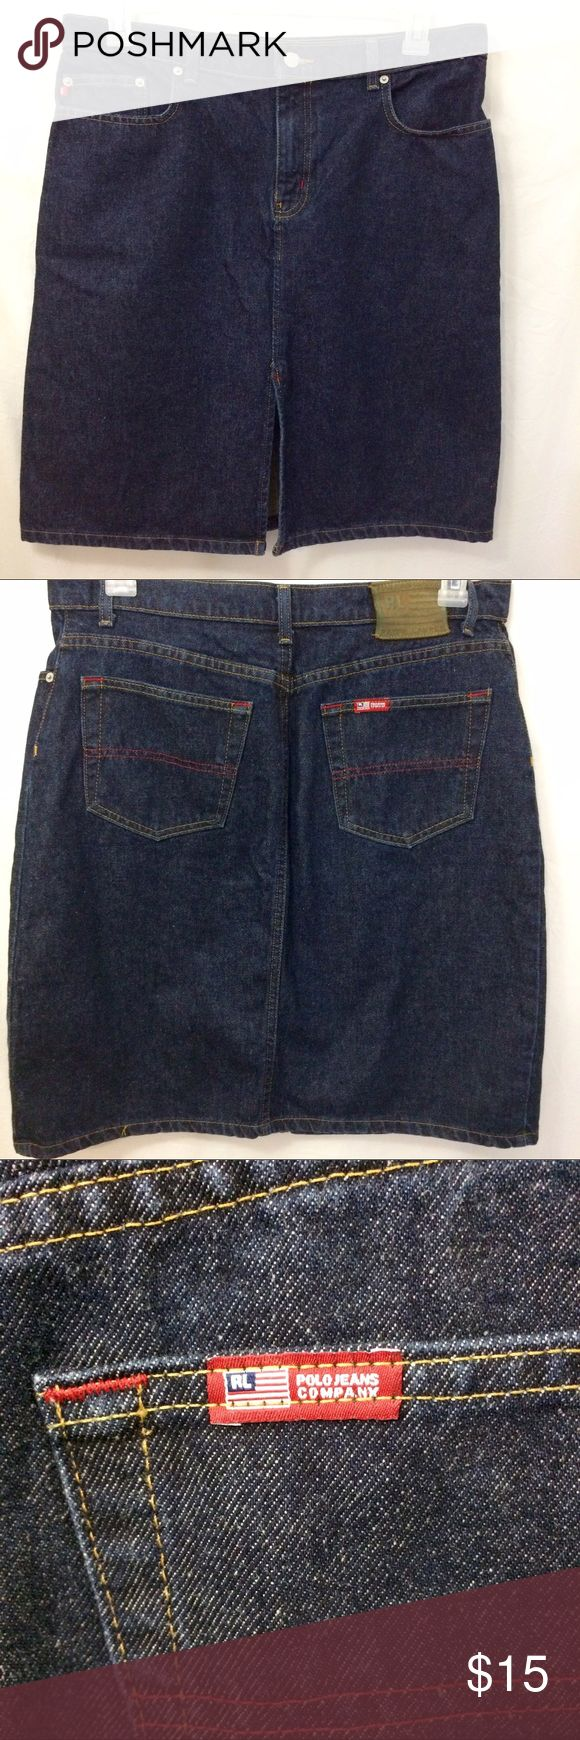 Women's Ralph Lauren Polo Jeans Denim Knee Skirt Women's Ralph Lauren Polo Jeans Denim Knee Skirt. Three pockets in the front. Two pockets in the back. Front kick slit. Size 10. Length 22 1/2 inches. Polo by Ralph Lauren Skirts